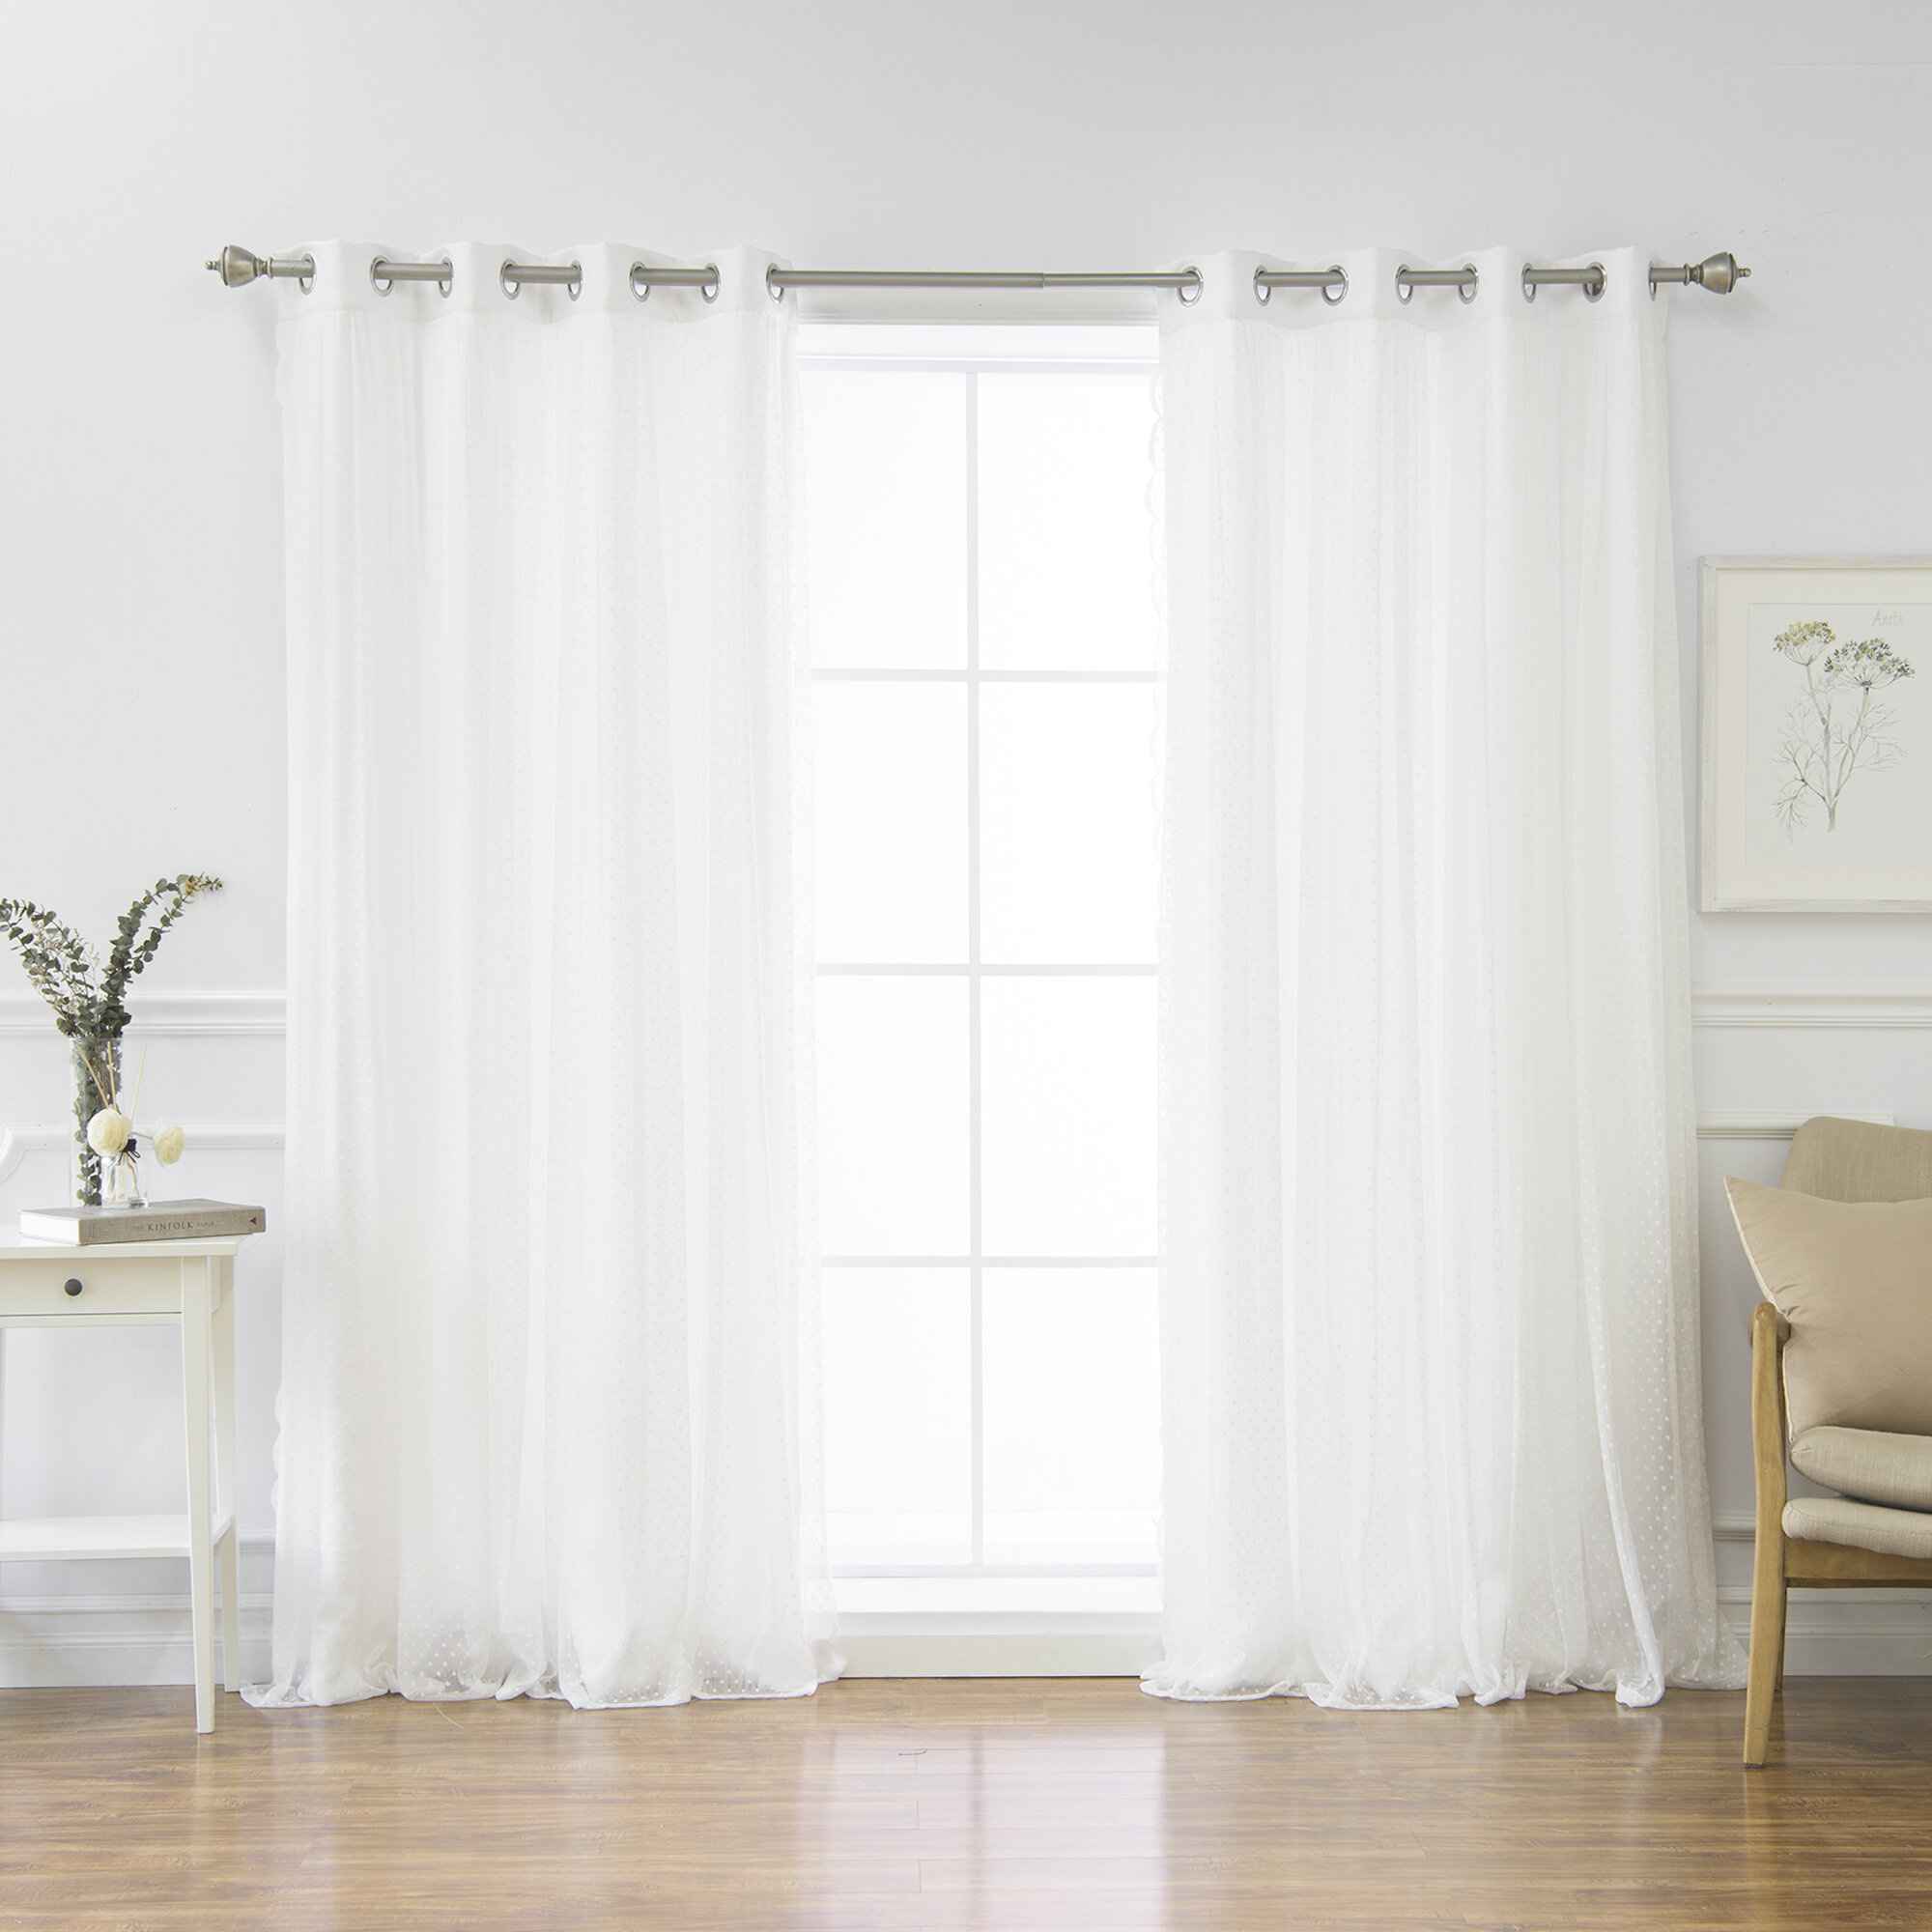 Elegant Curtains with White Backing